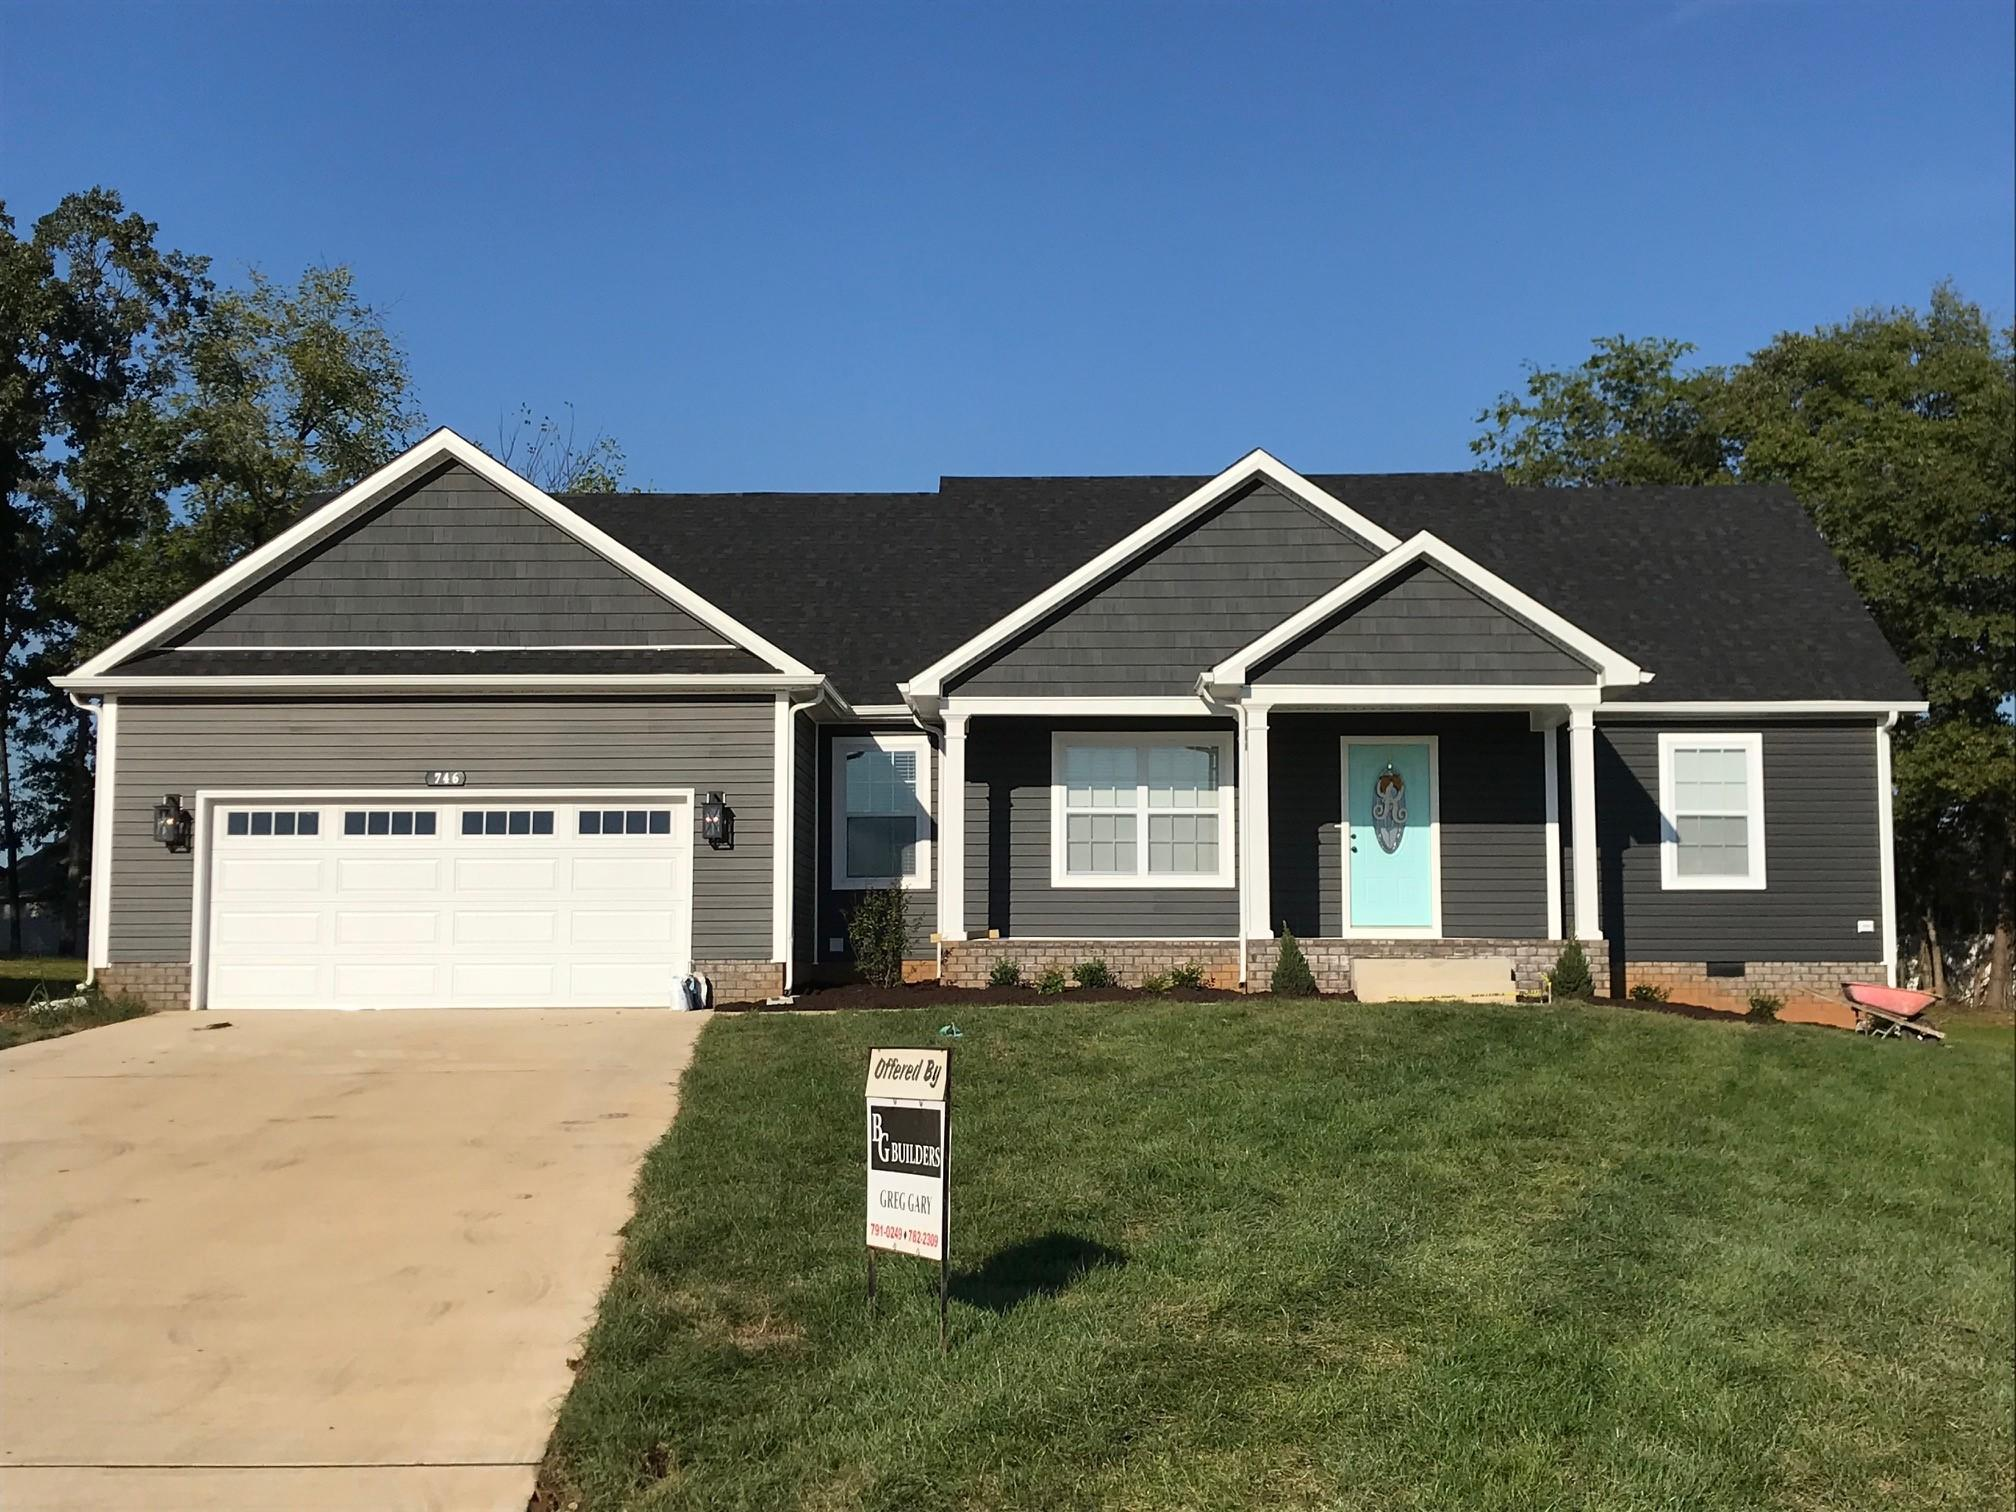 00 492 Plan Bowling Green Ky 42101 3 Bed 2 Bath Single Family